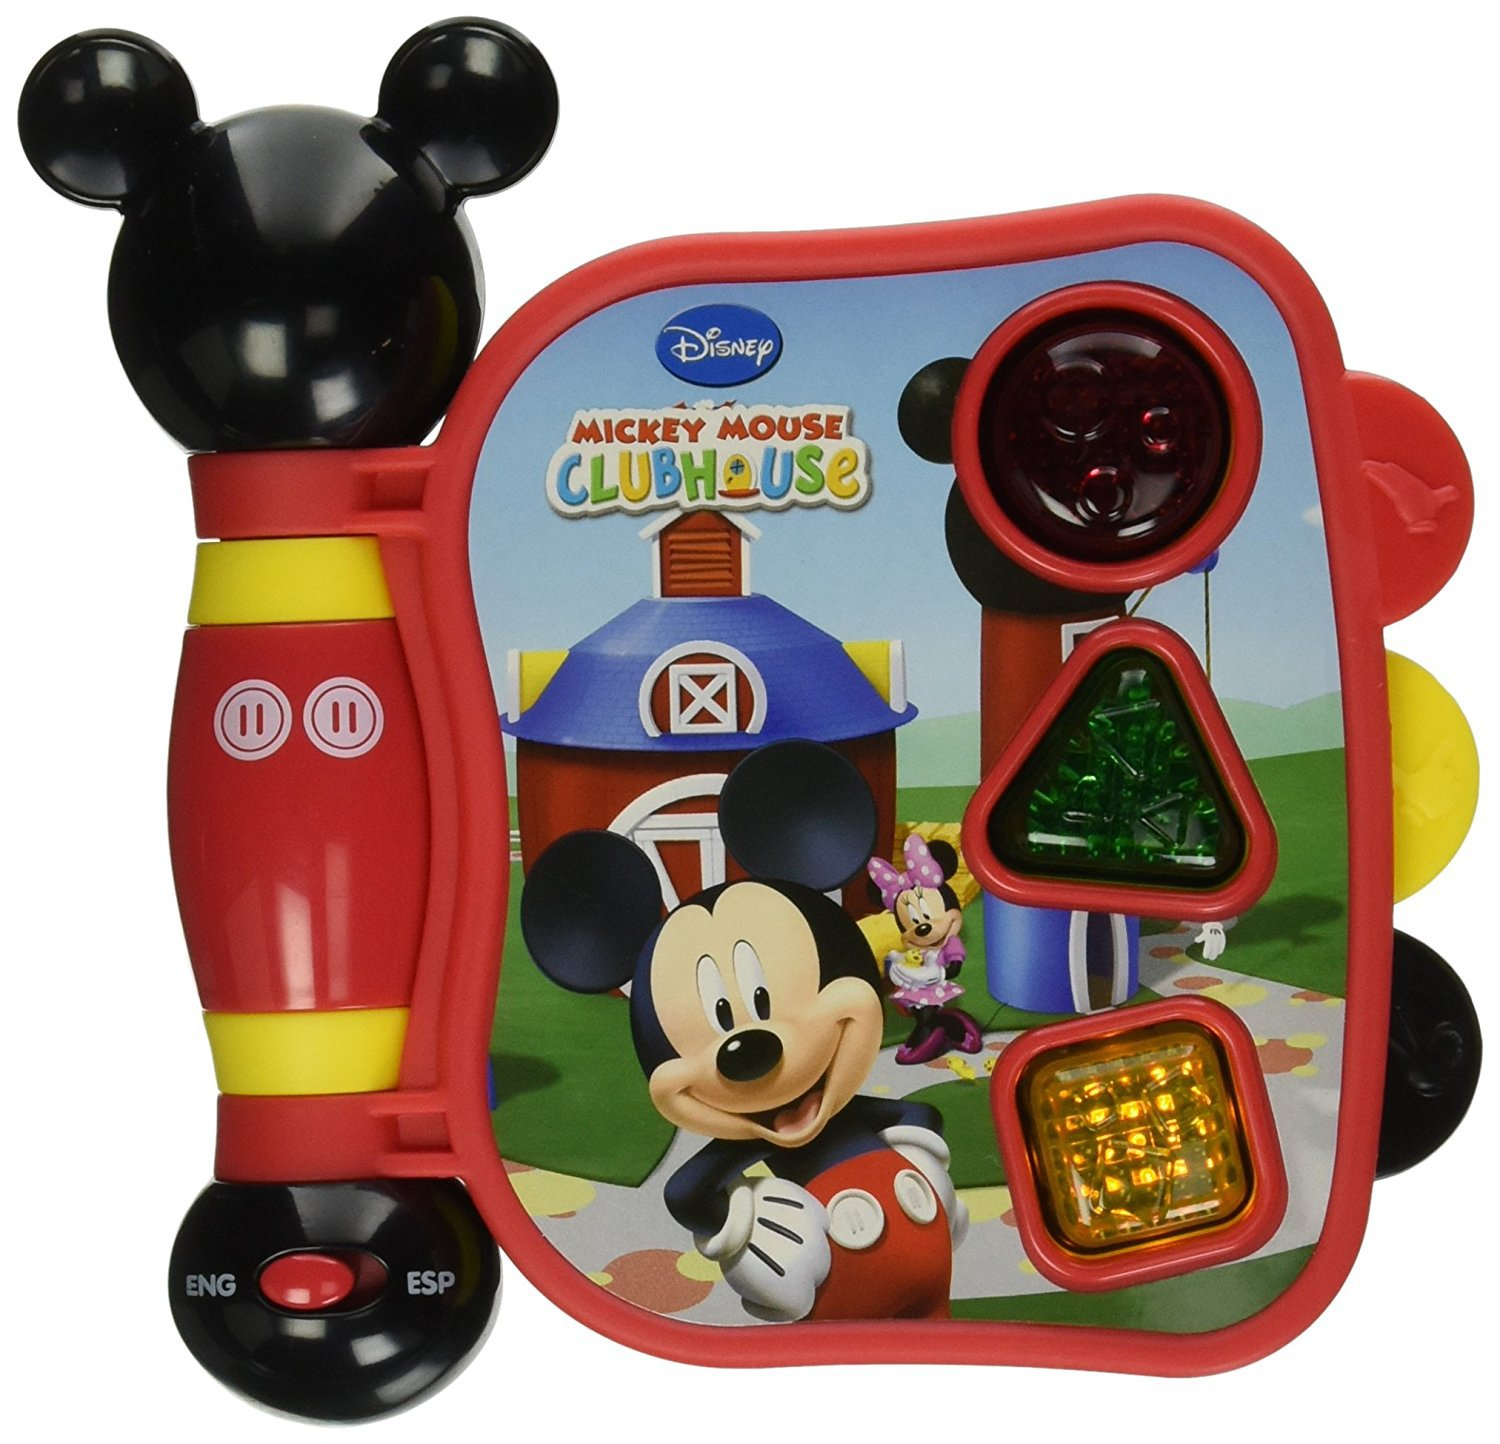 Disney Mickey Mouse Clubhouse First Learning Book Shapes